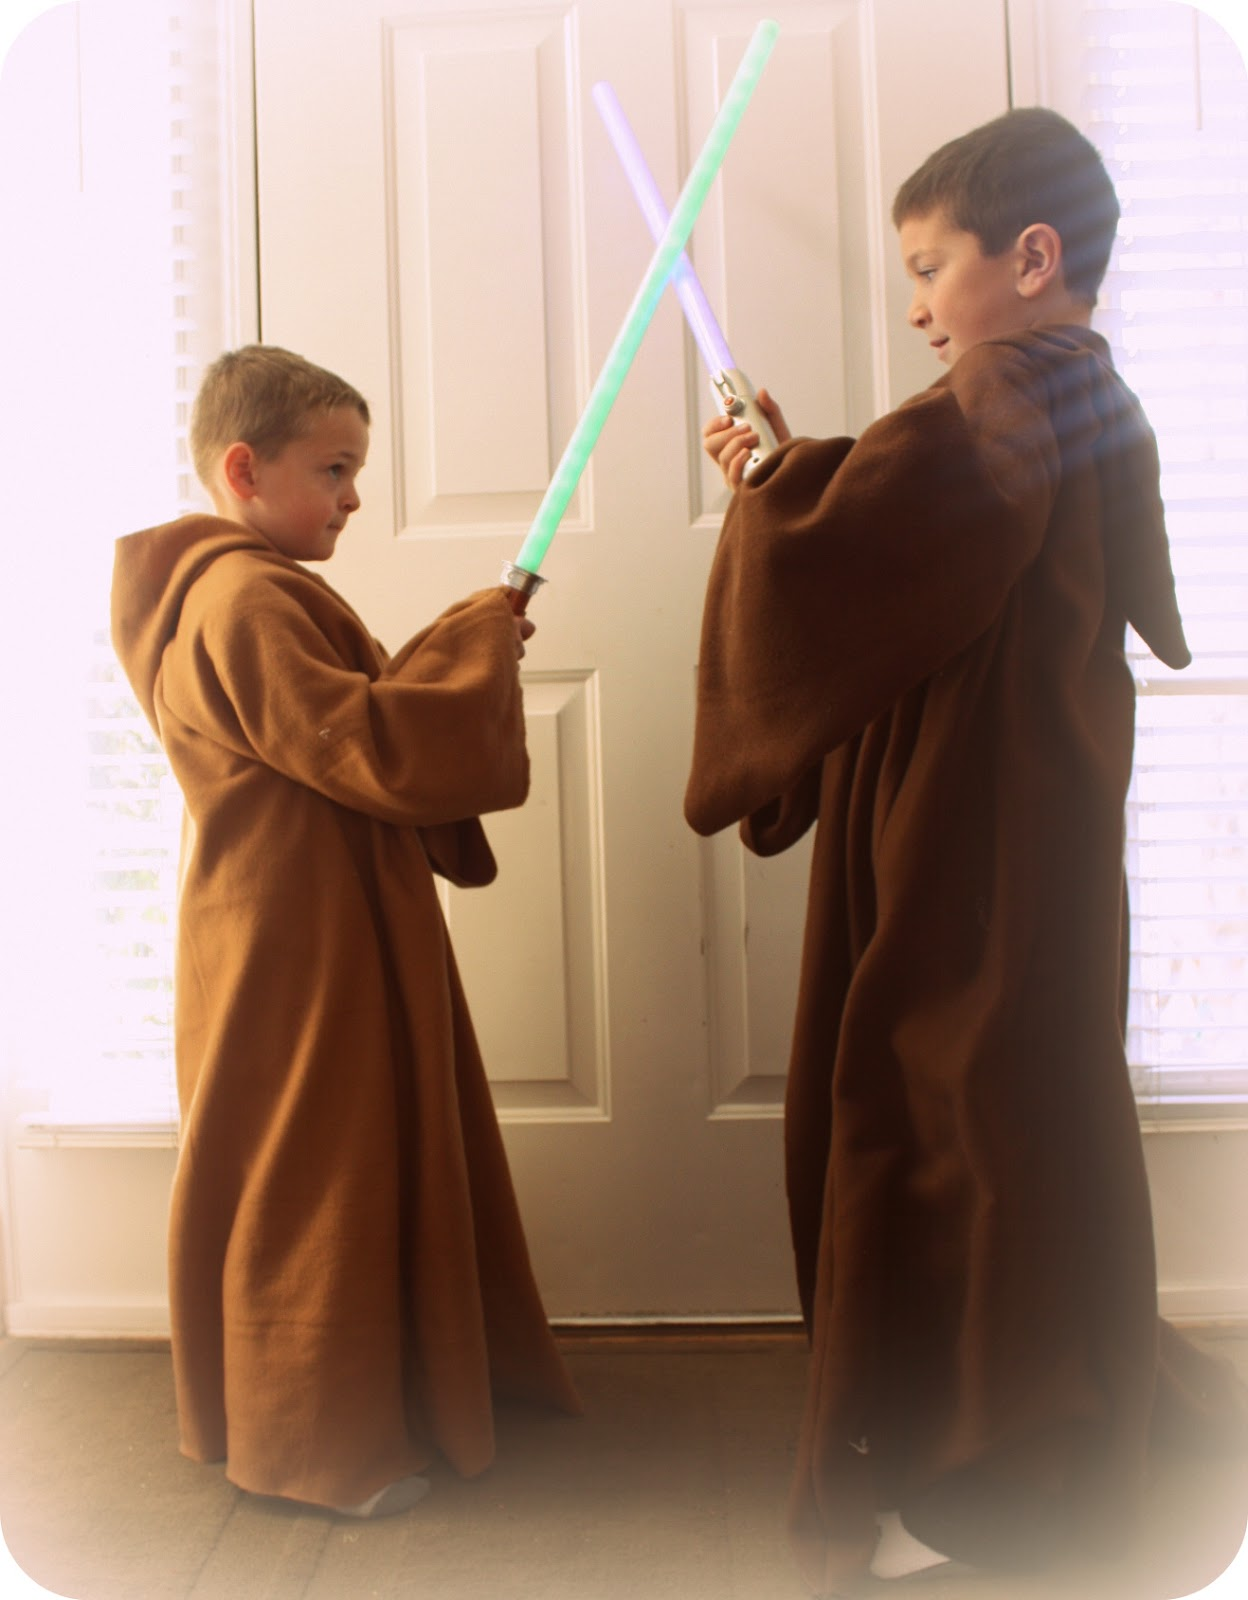 dd0f5ad61c Jedi Robes - Diary of a Quilter - a quilt blog